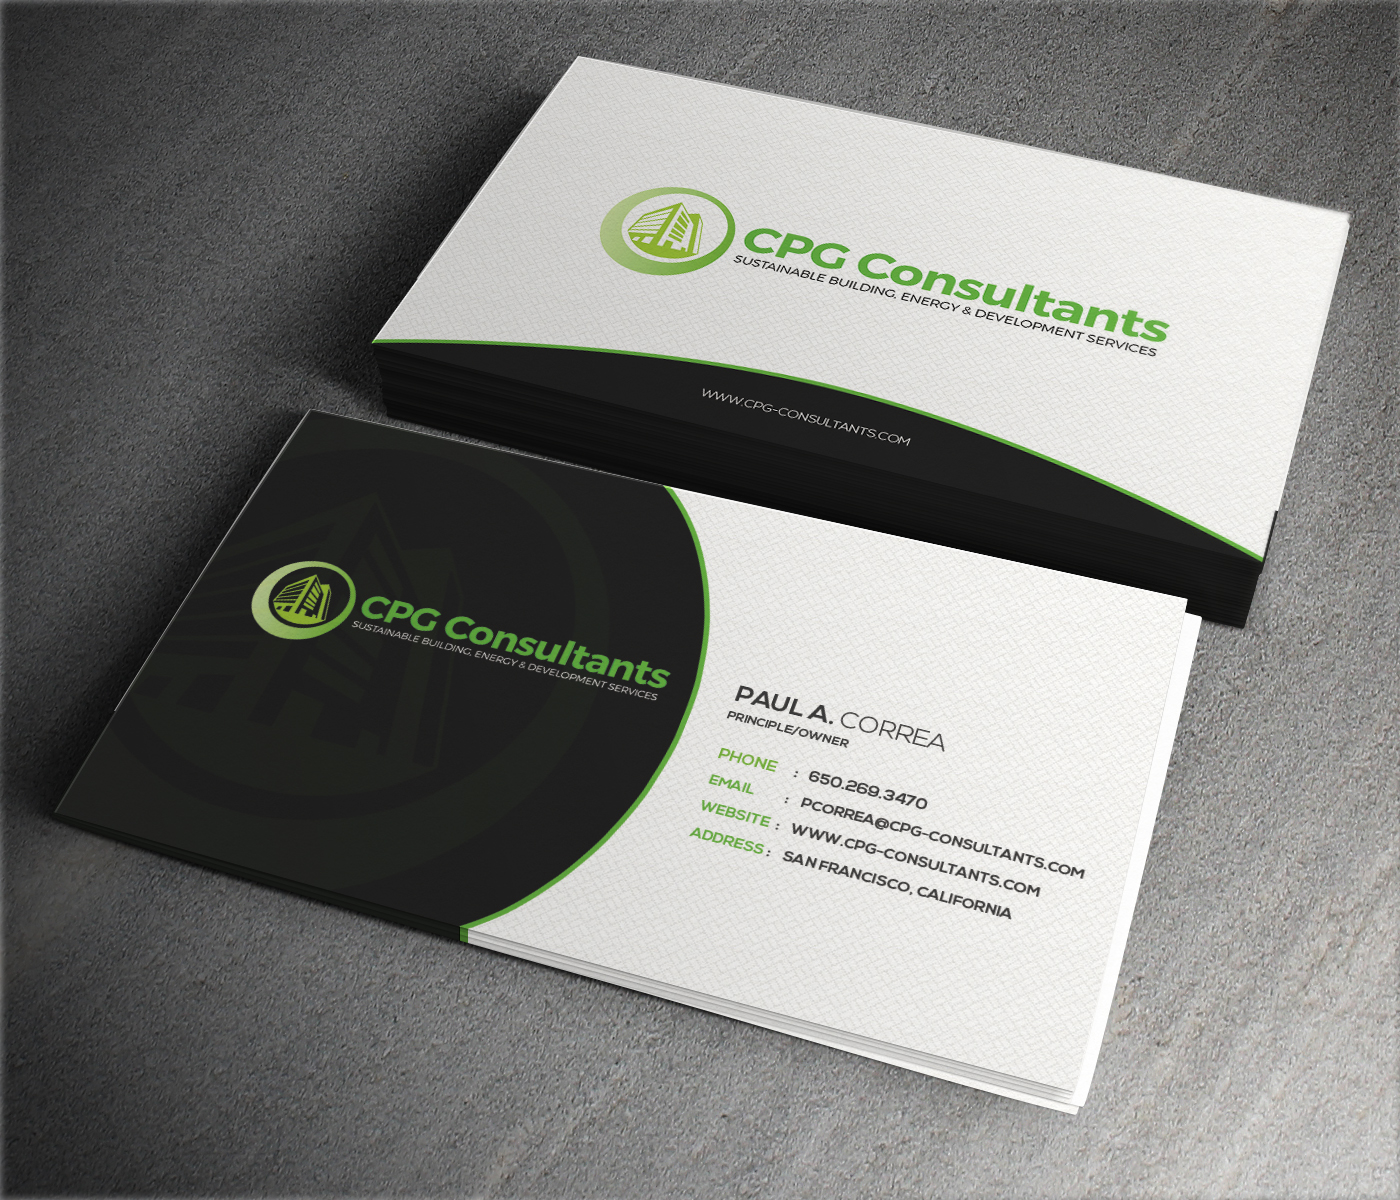 Elegant playful real estate business card design for cpg business card design by themedesk technology for cpg consultants design 5770862 colourmoves